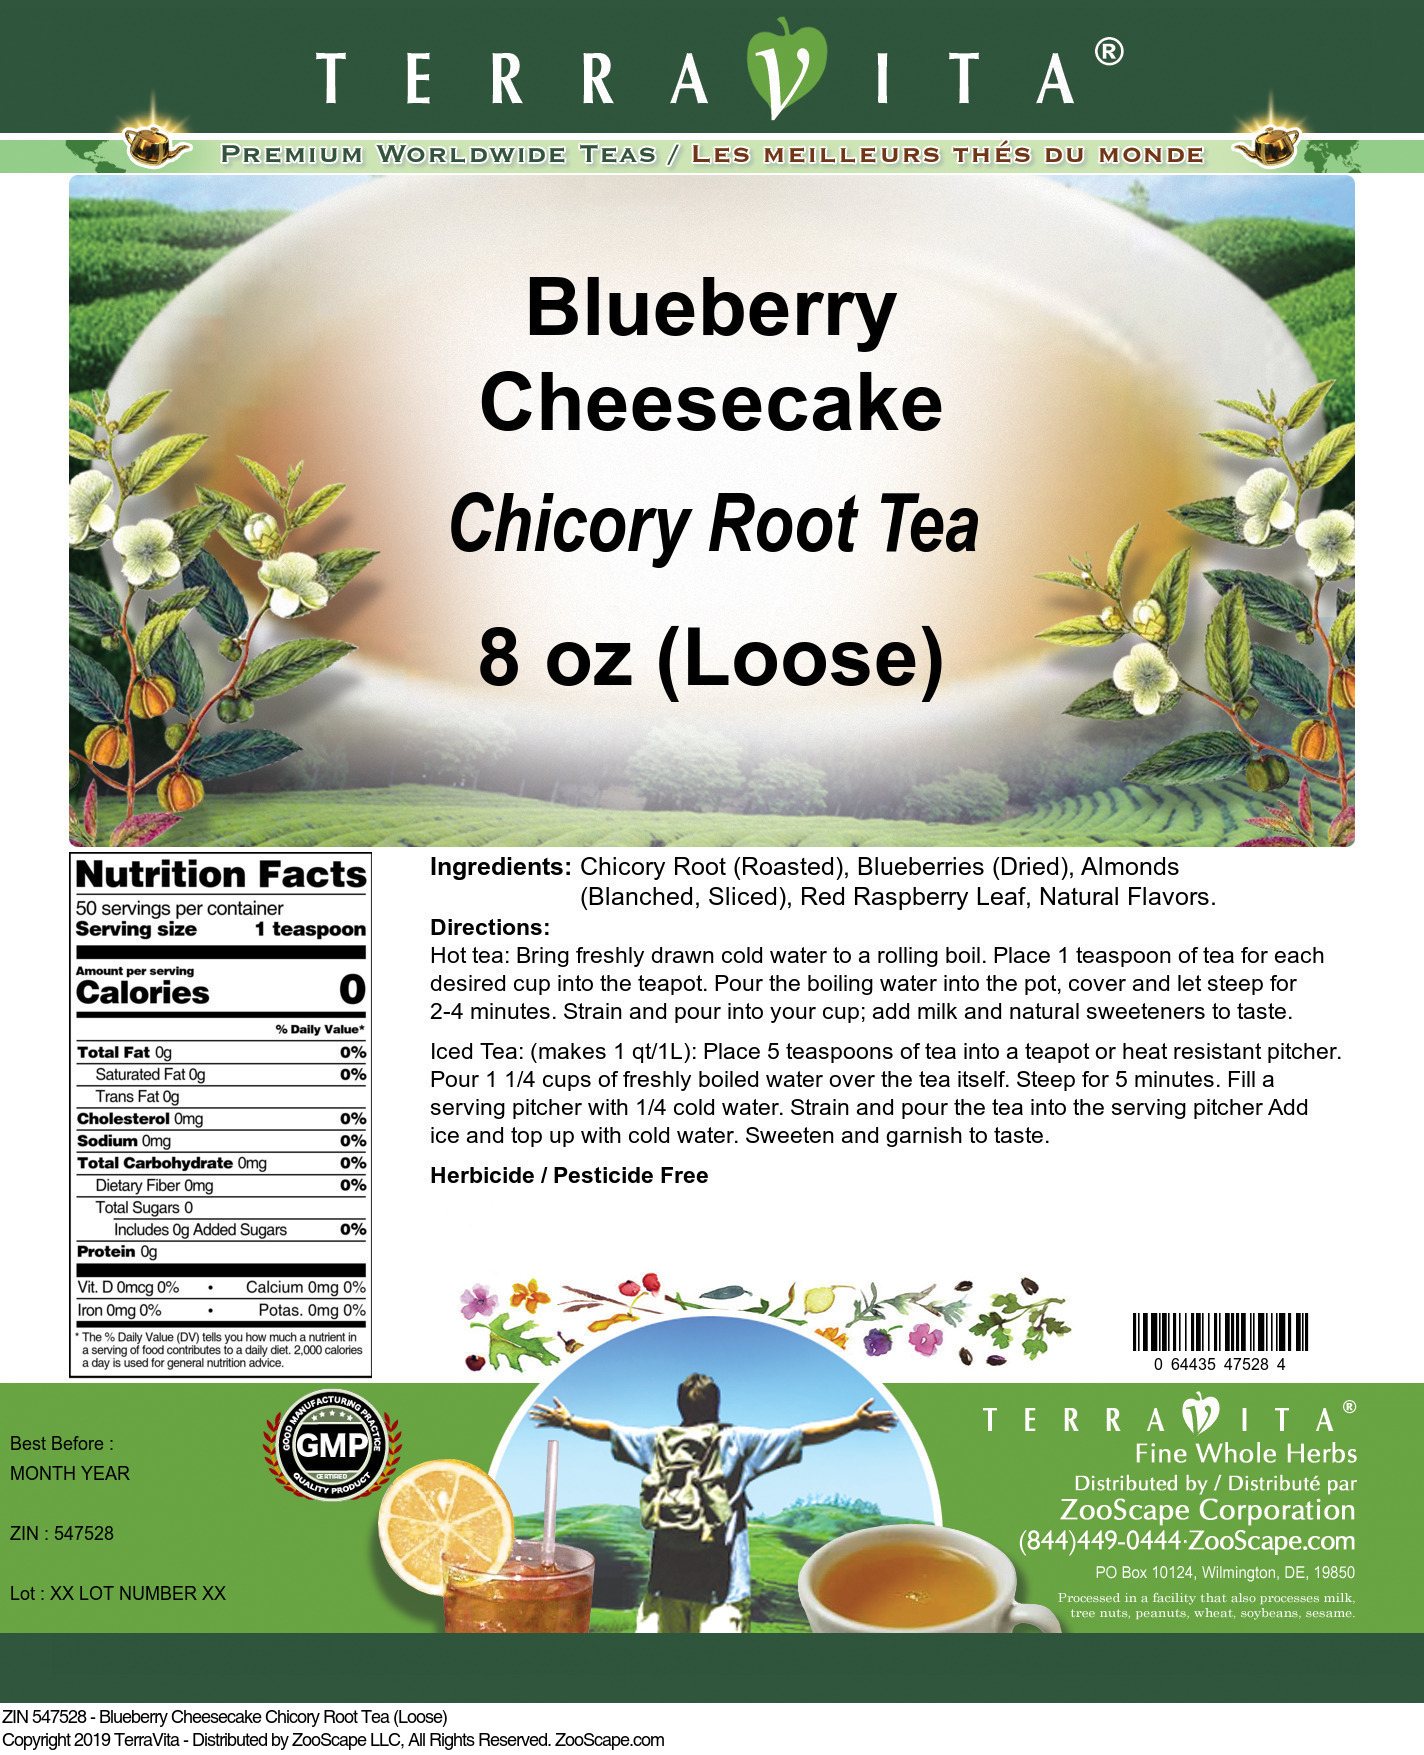 Blueberry Cheesecake Chicory Root Tea (Loose)